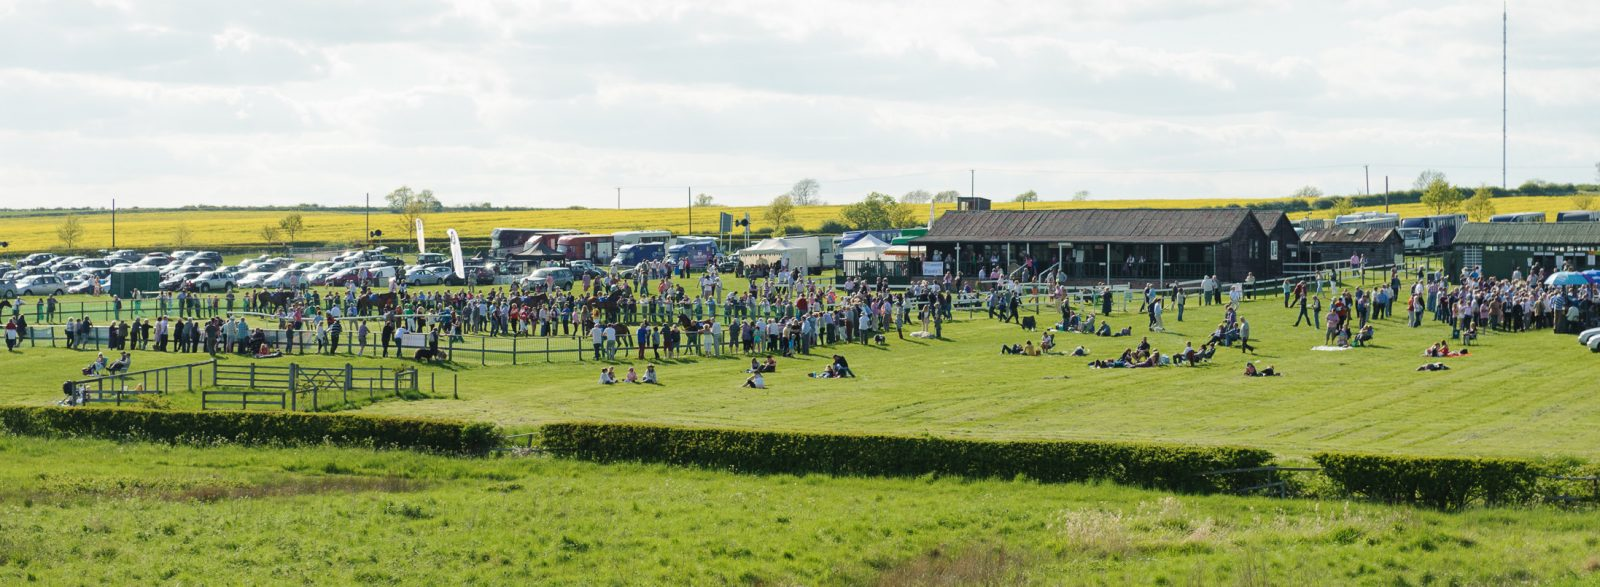 A view of Garthorpe's permanent racing facilities